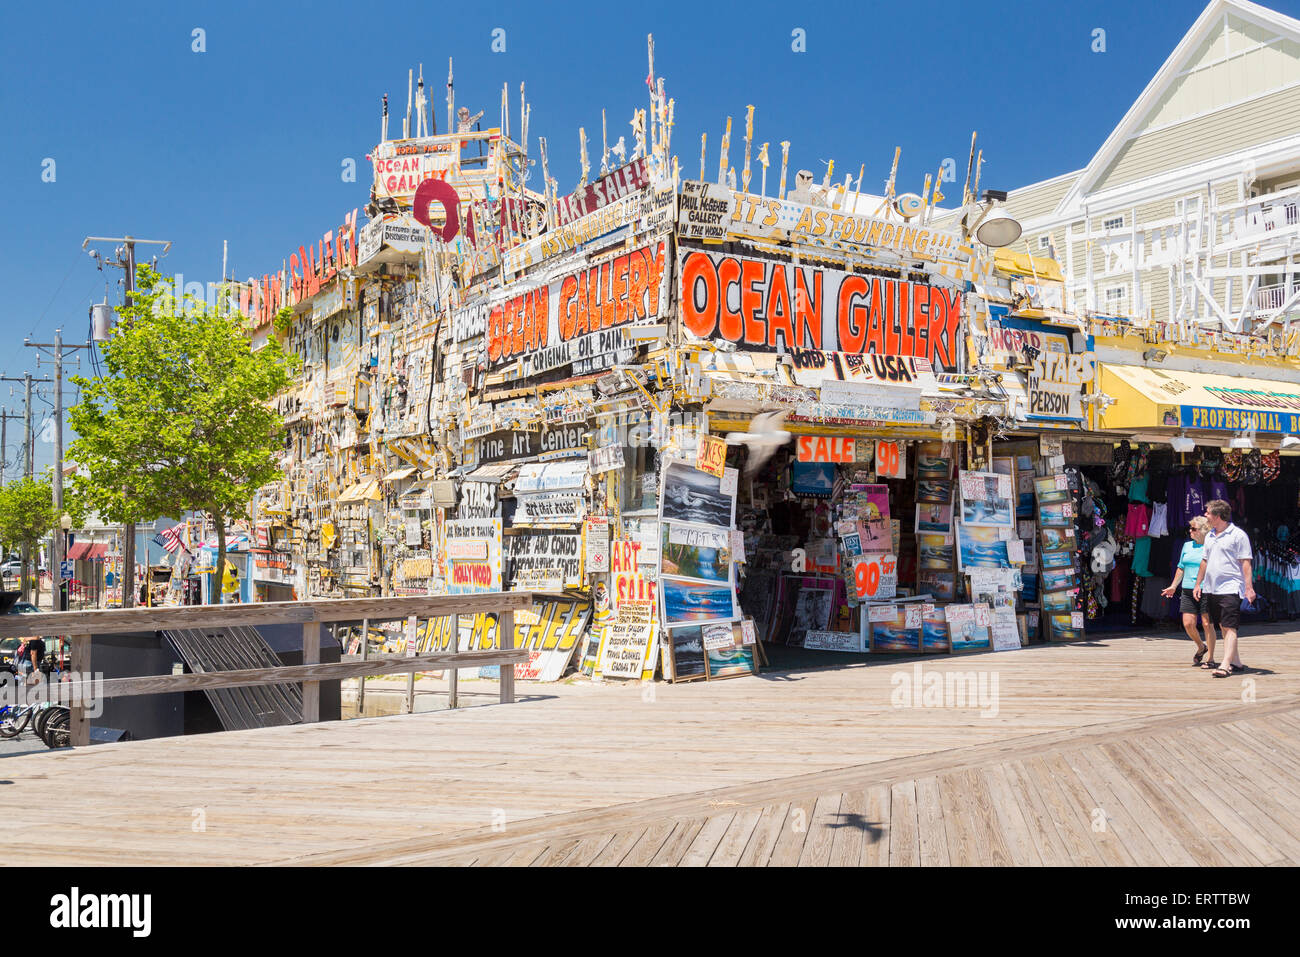 Complex and busy shop front of Ocean Gallery on boardwalk in Ocean City, Maryland, USA - Stock Image